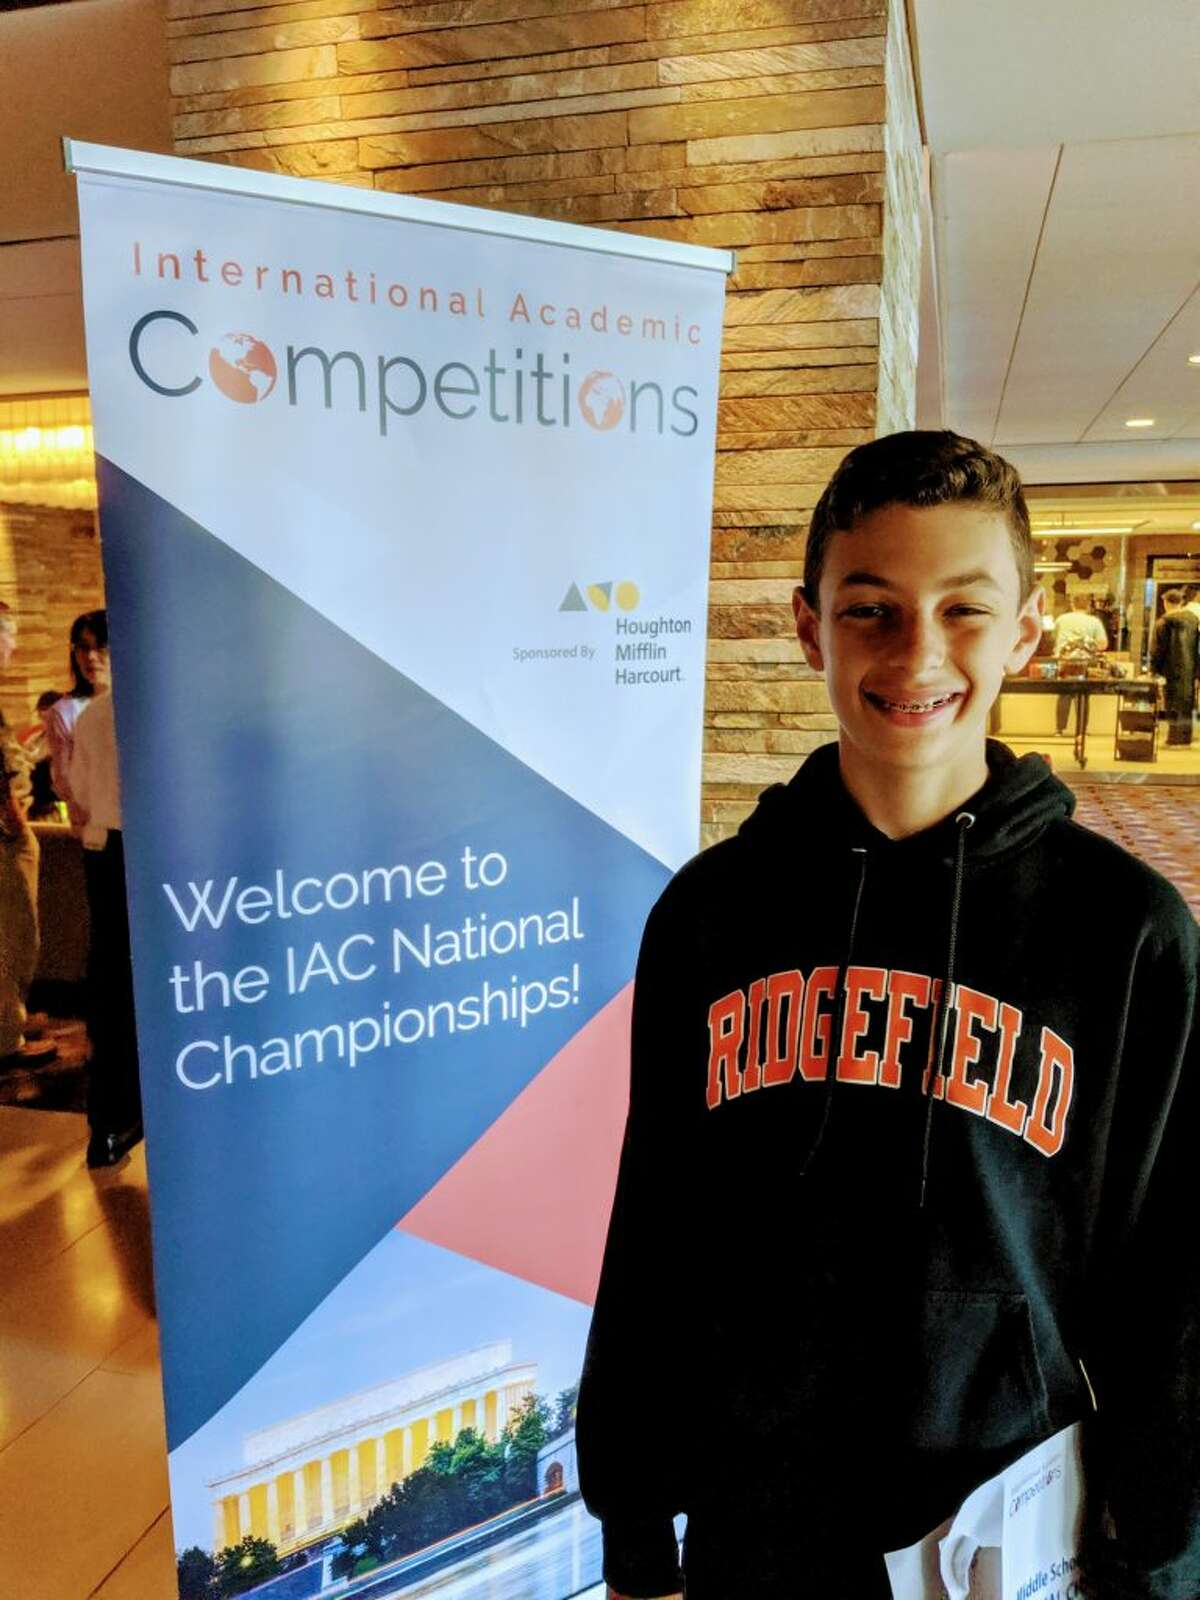 East Ridge Middle School student Zach Smuckler competed at the National Academic Bee, Geography Bee and Geography Olympiad in Chicago earlier this month. In the Geography Olympiad, he scored fourteenth in the country out of 143 competitors.